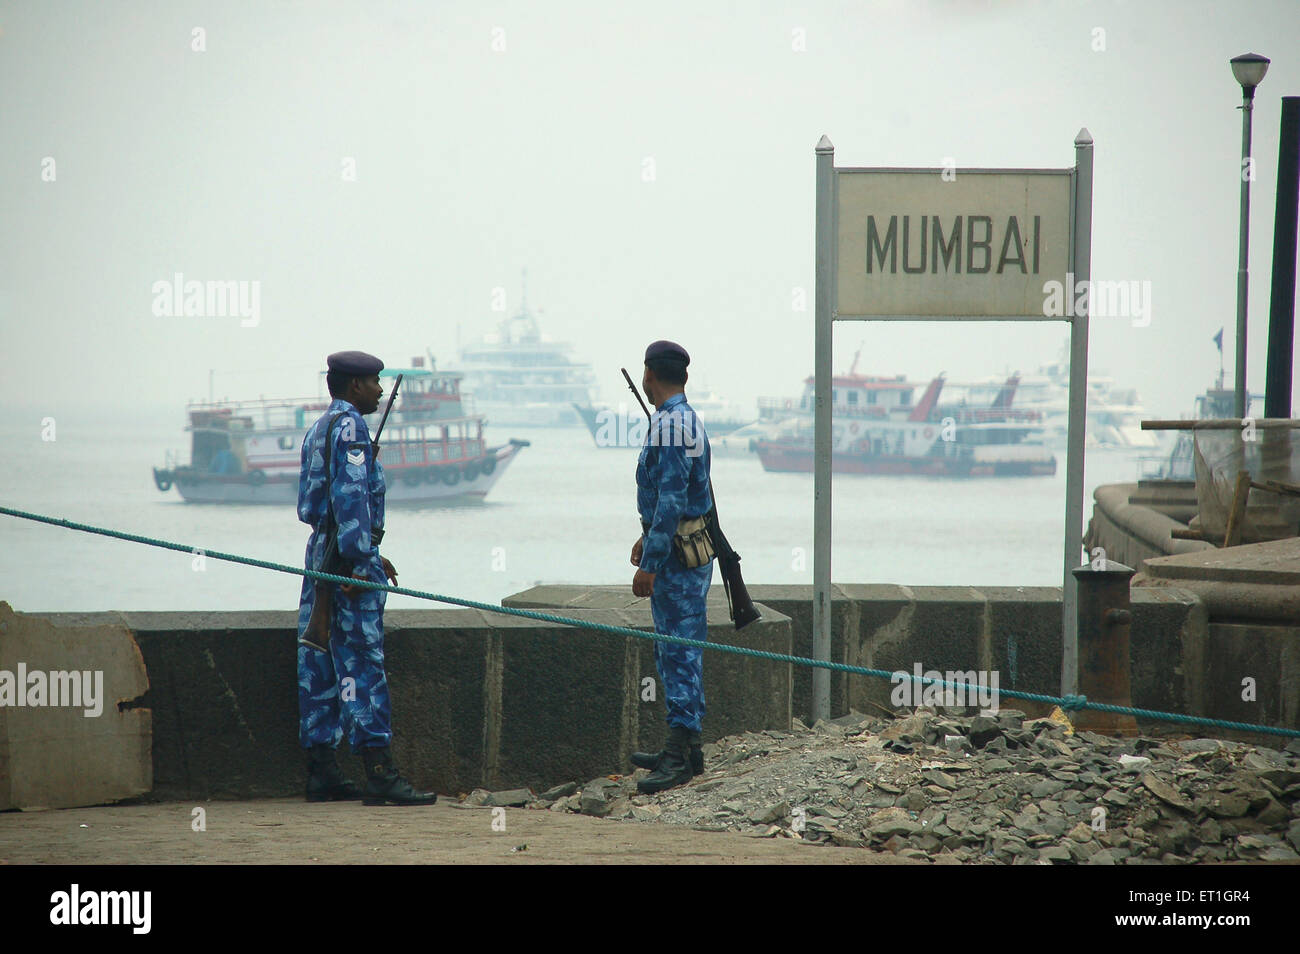 Rapid action force police keep watch coastal area after terrorist attack by deccan mujahideen ; Bombay Mumbai - Stock Image